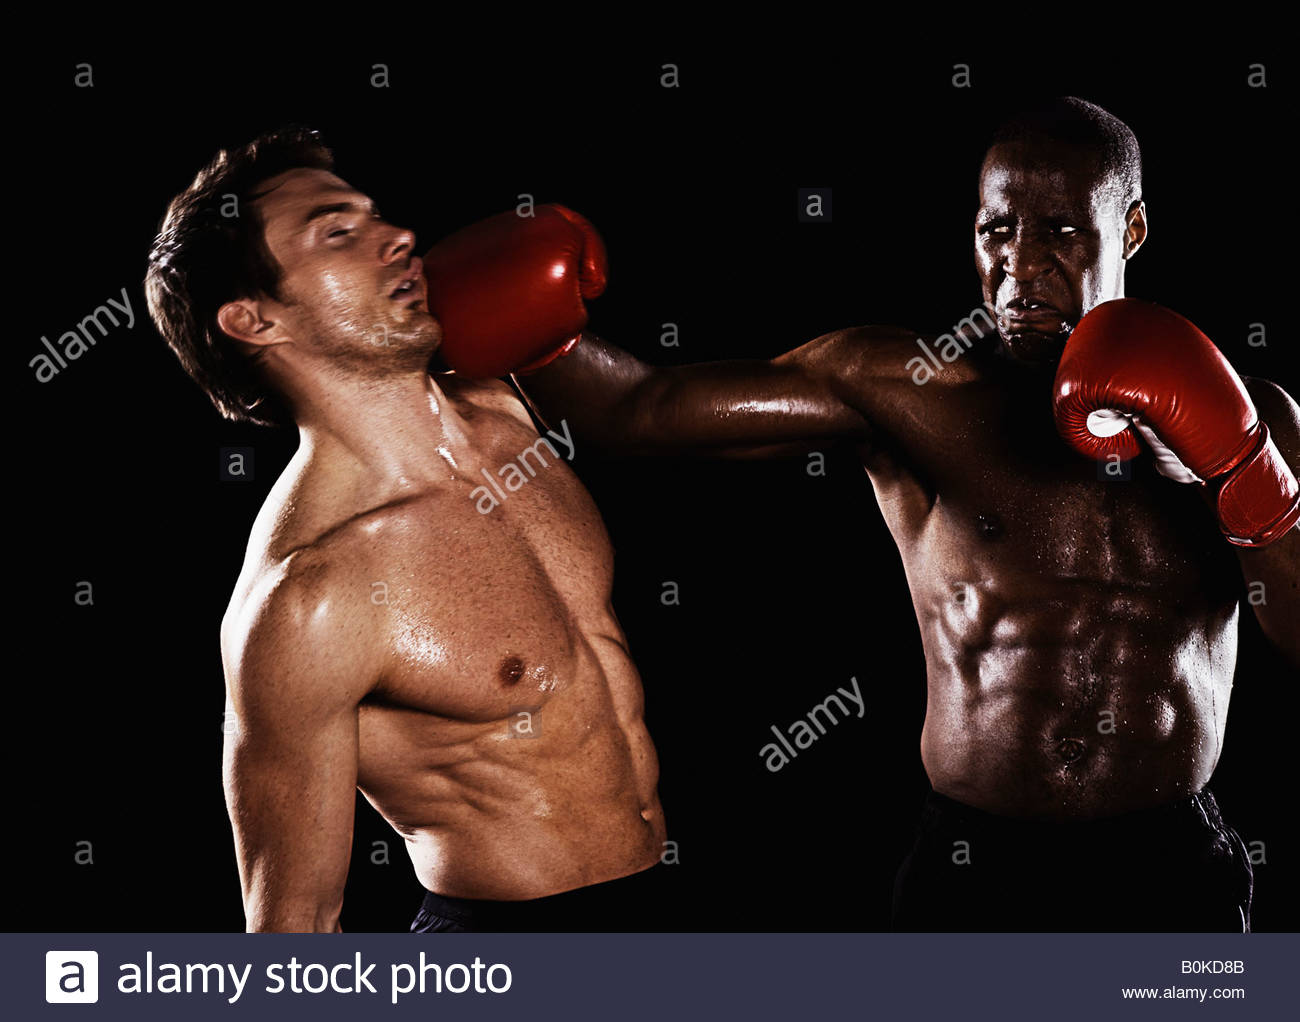 Two men boxing with one being hit - Stock Image